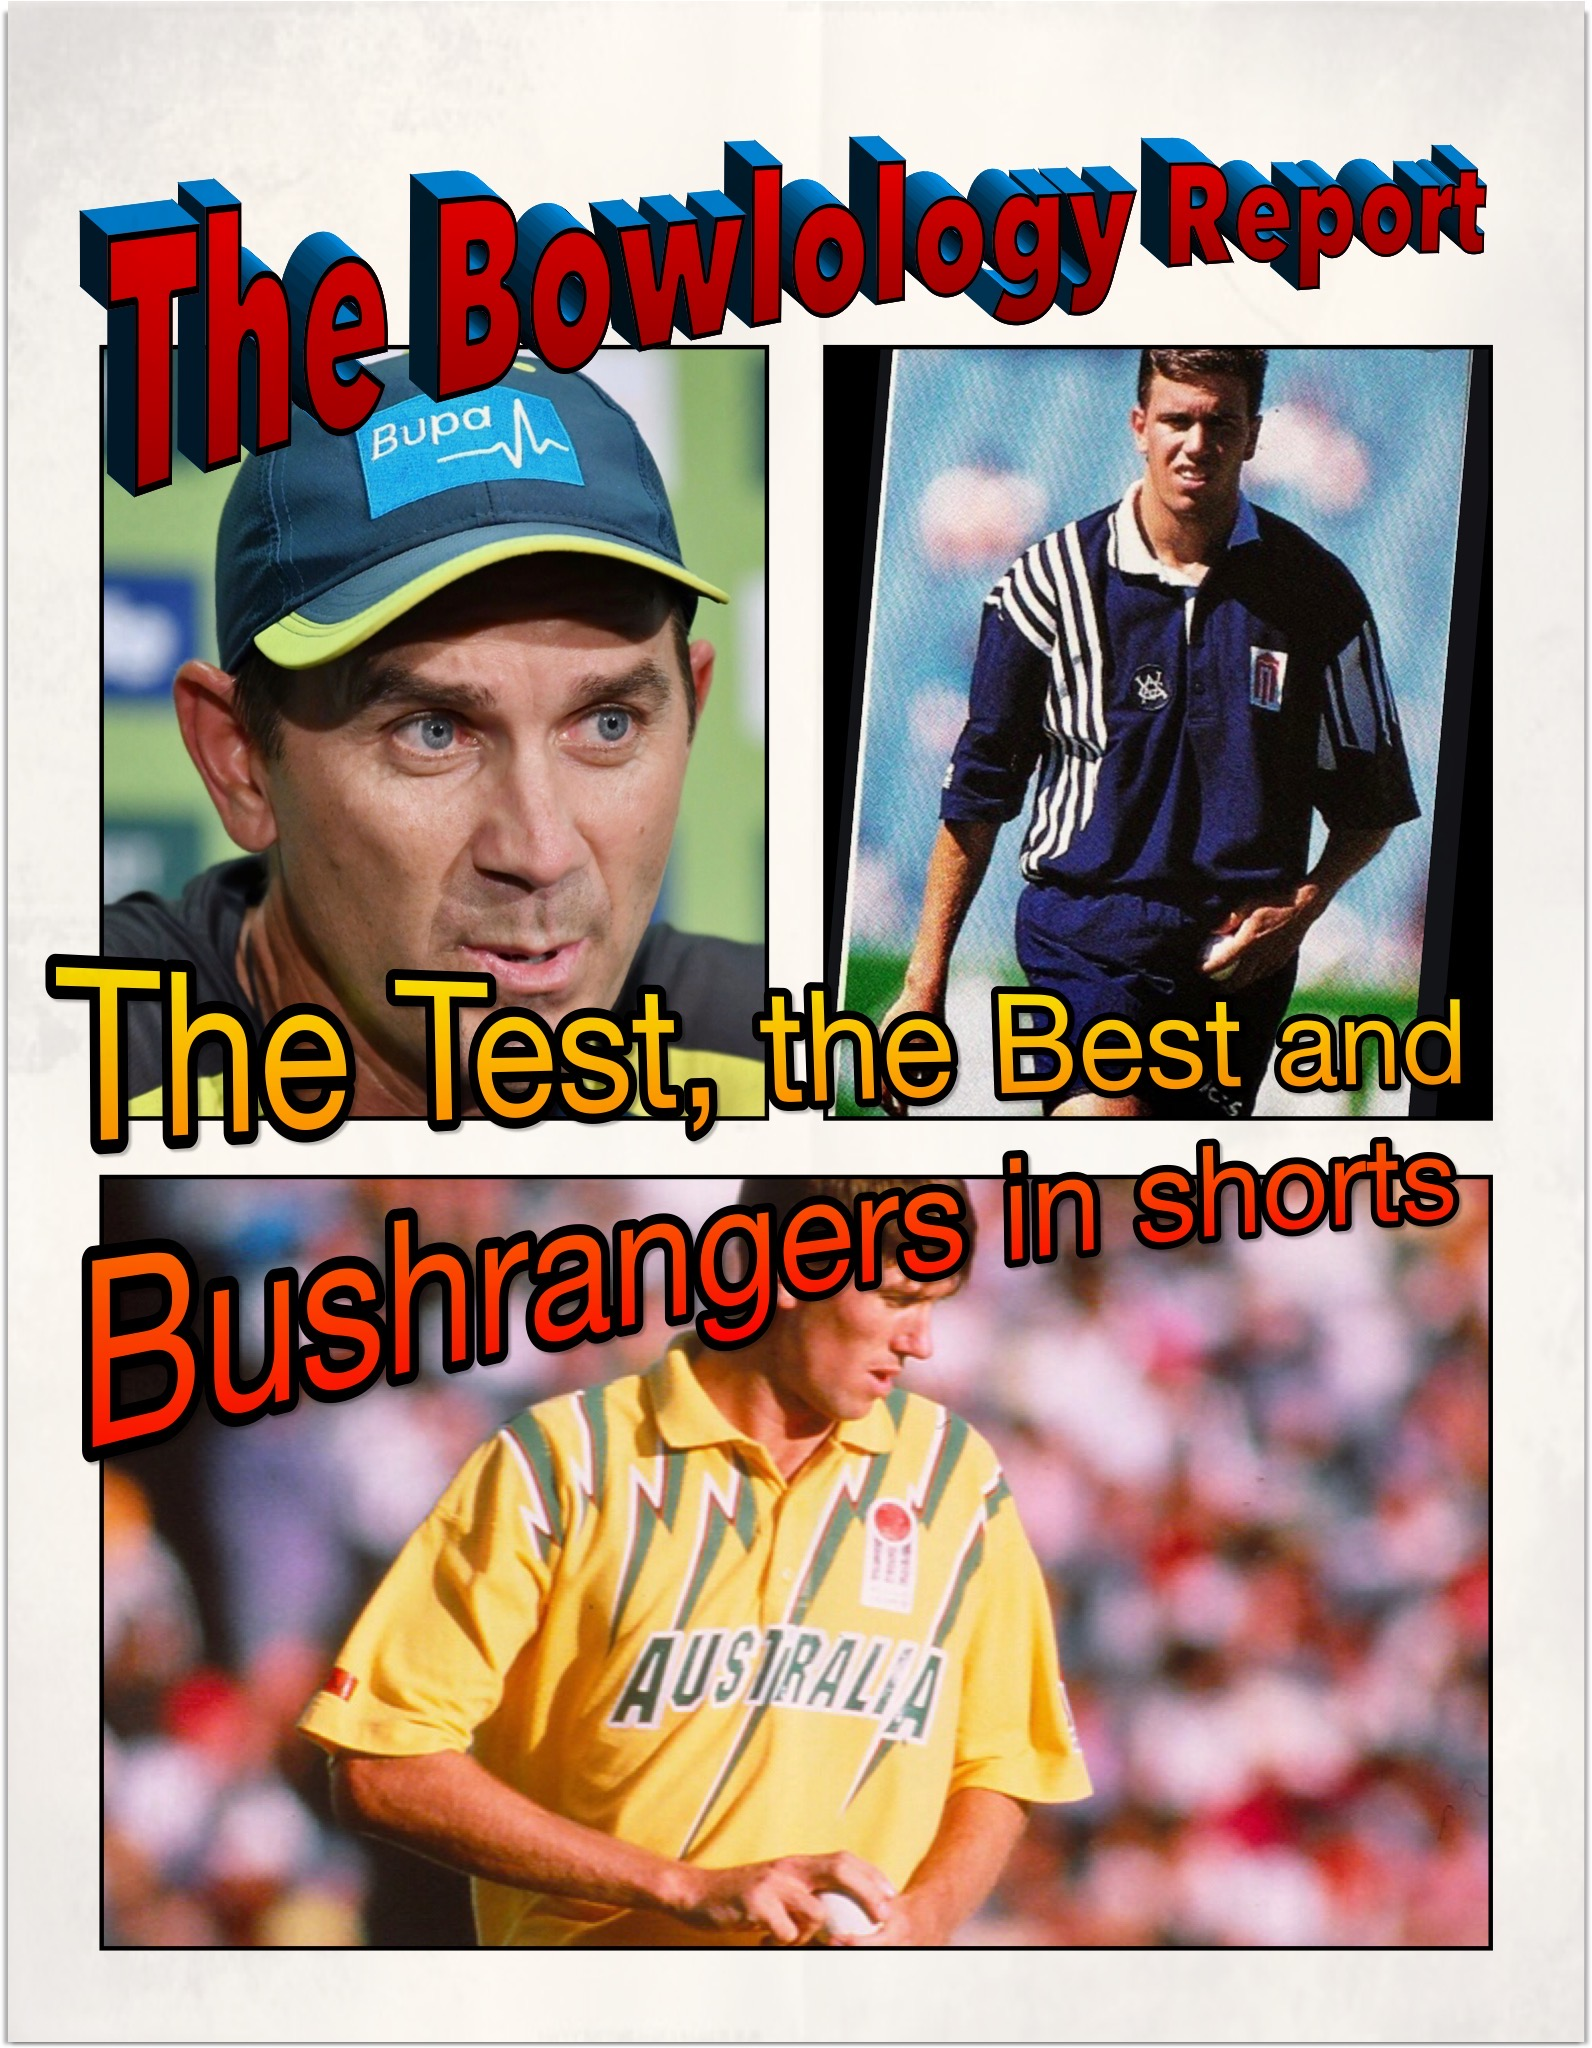 Ep 49 The Test the Best and Bushrangers in Shorts